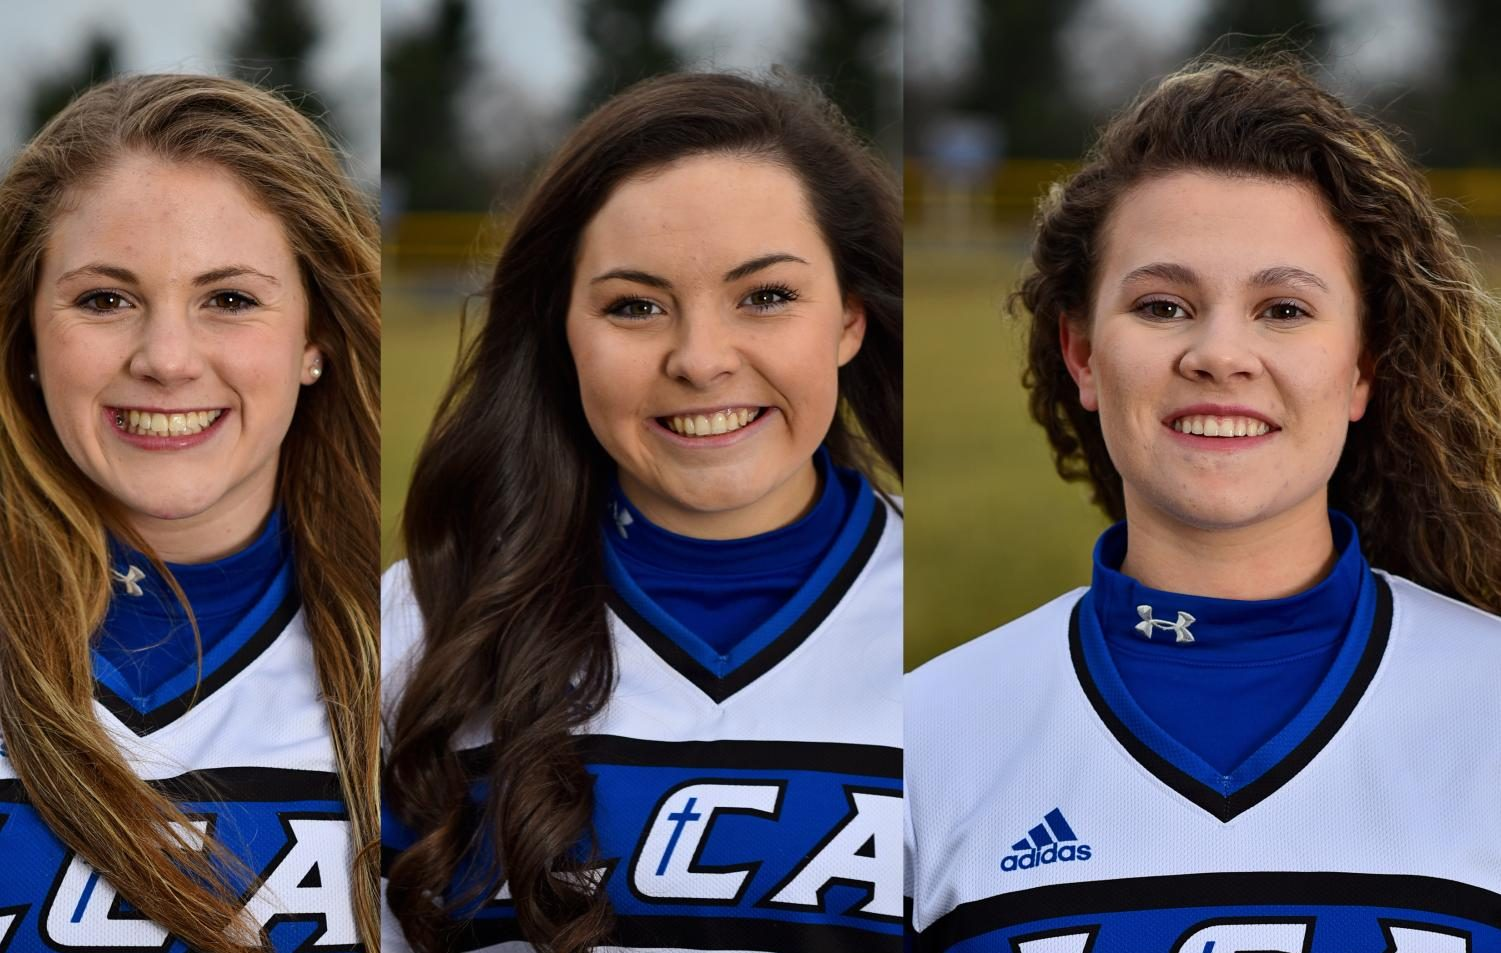 Olivia Paris, 11, Elise Shewmaker, 12, and Millie German, 12, have committed to play softball in college.